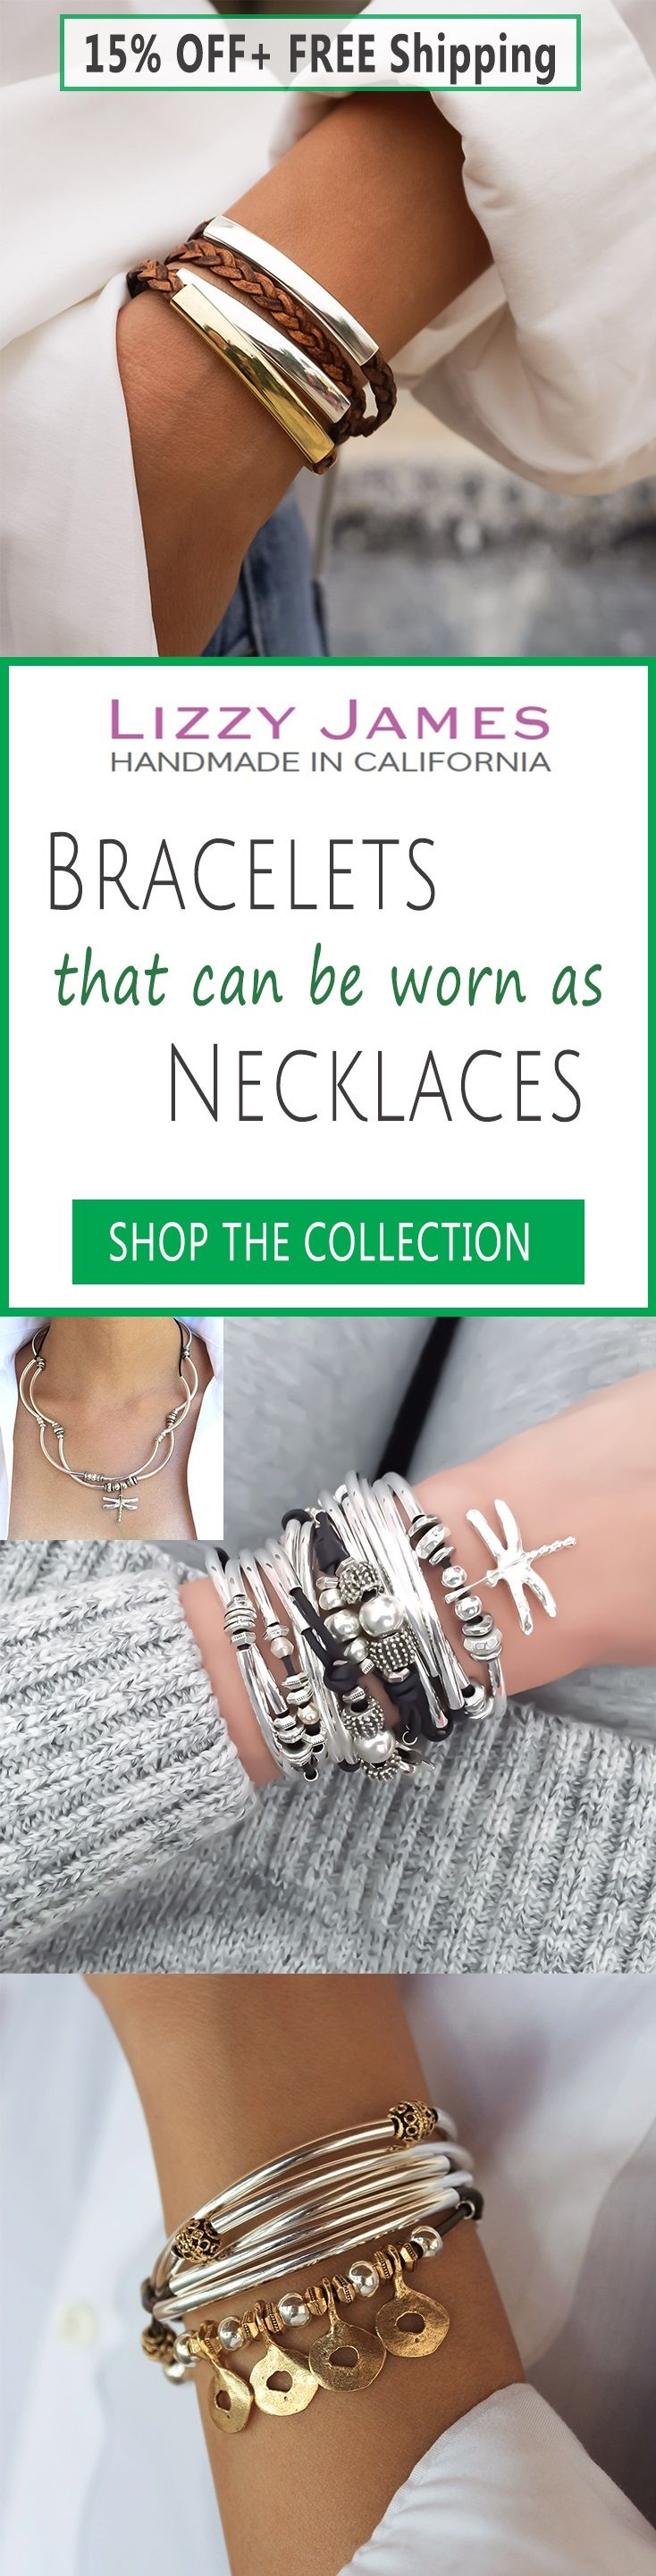 Great Holiday Gift Ideas! 15% Off + Free Shipping for all 1st time buyers, let Lizzy James Jewelry help you Fall into Style this Holiday Season! Featuring leather & cotton cord wrap bracelets that can also be worn as necklaces, our designs fit all wrist sizes from petite to plus size. Proud to be made in the USA! #lizzyjames